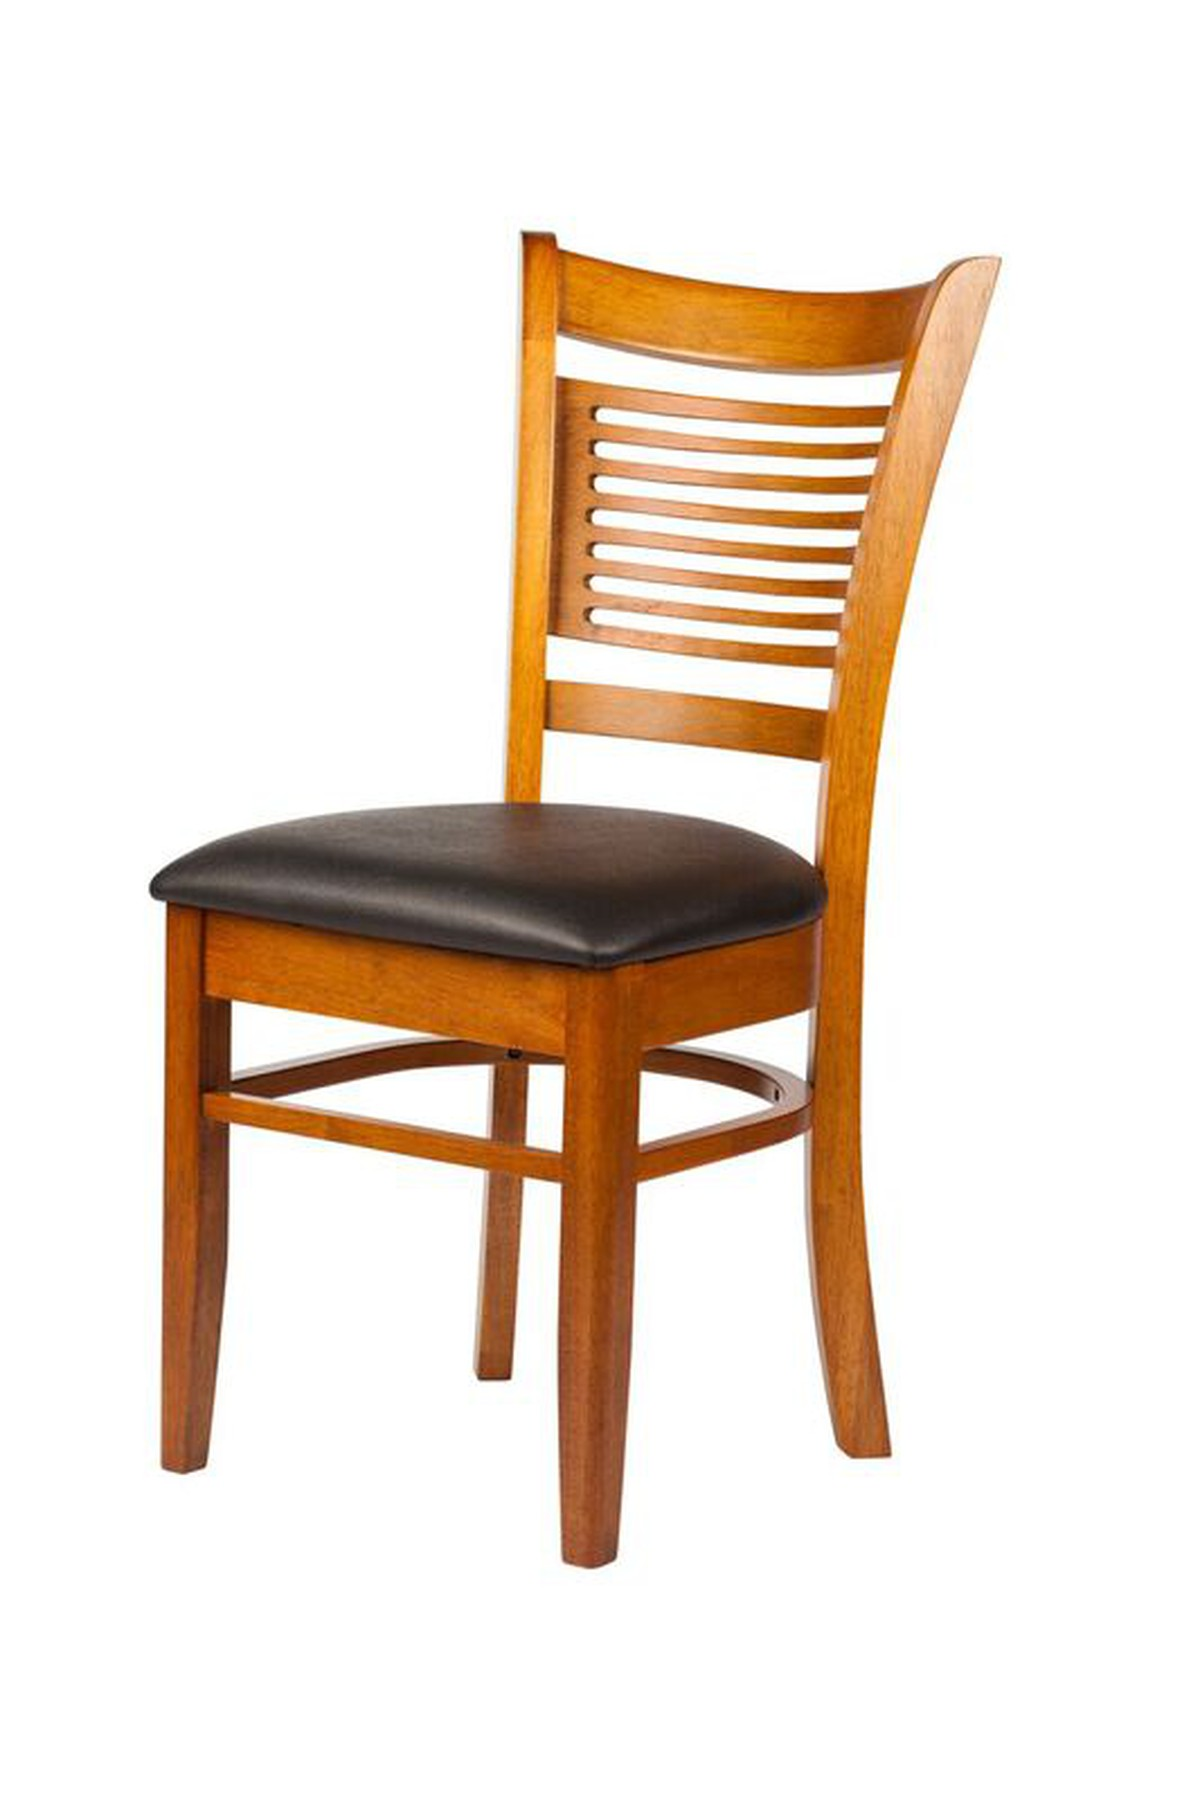 Cafe Chairs For Sale Secondhand Chairs And Tables Restaurant Chairs New